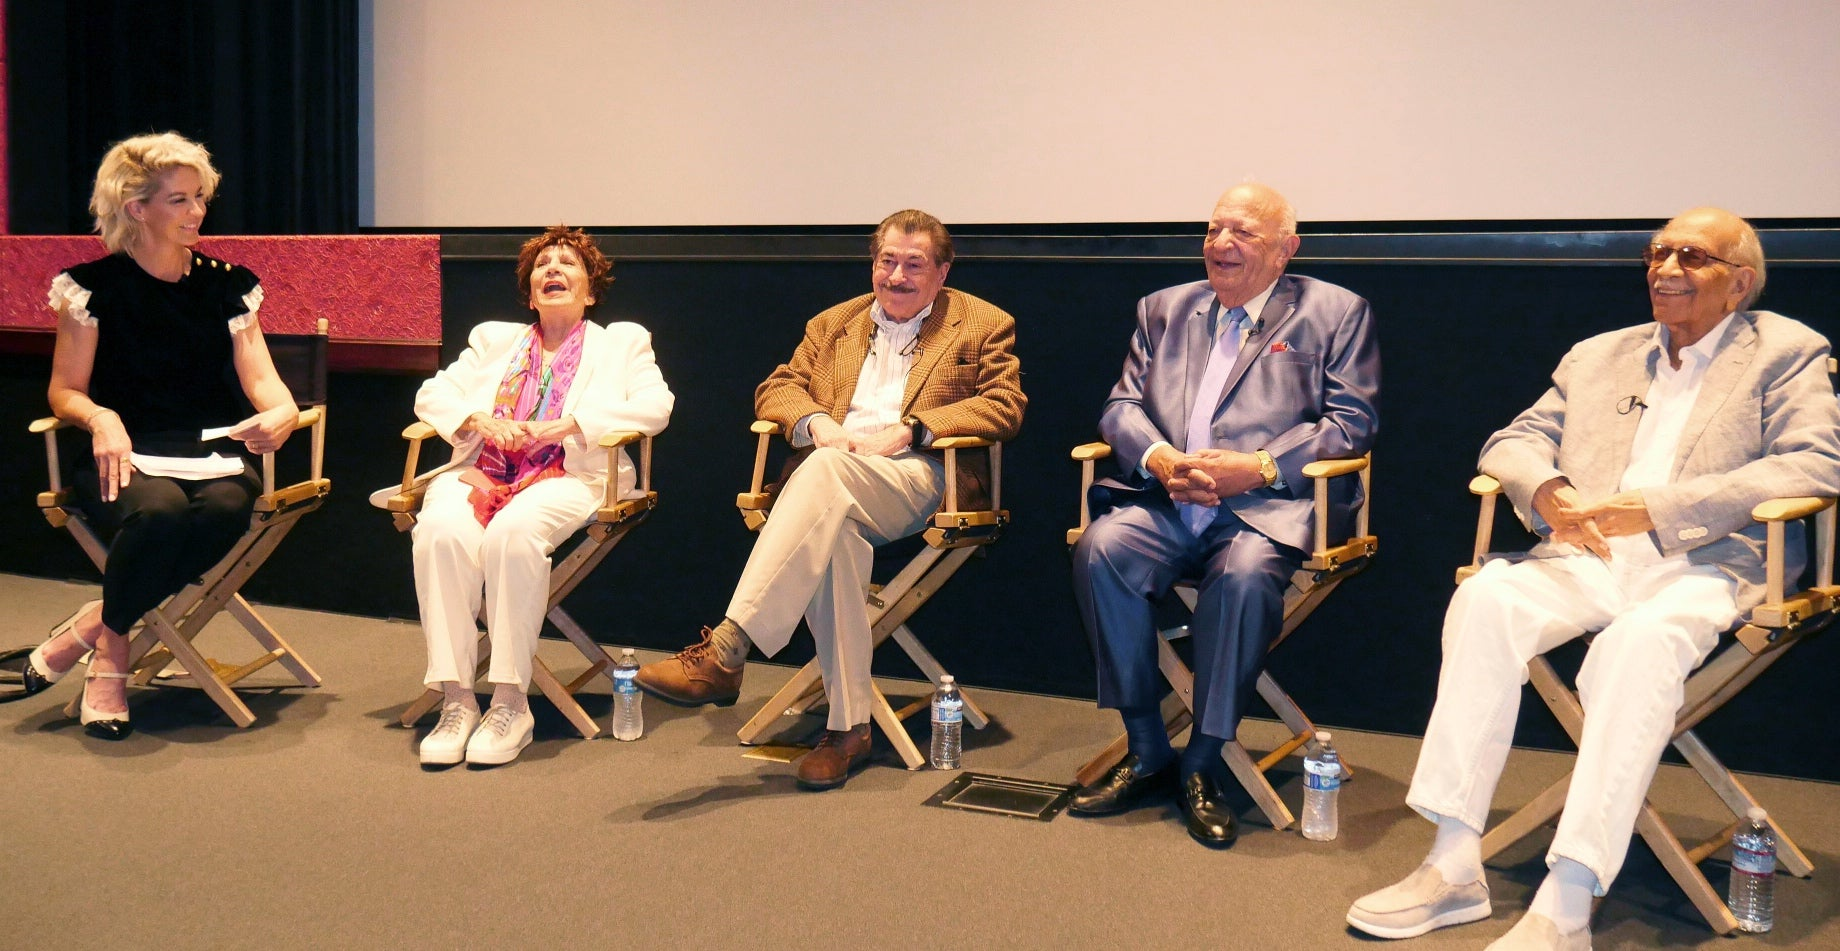 Moderator Jenna Elfman talks Hollywood history with senior members of the HFPA.